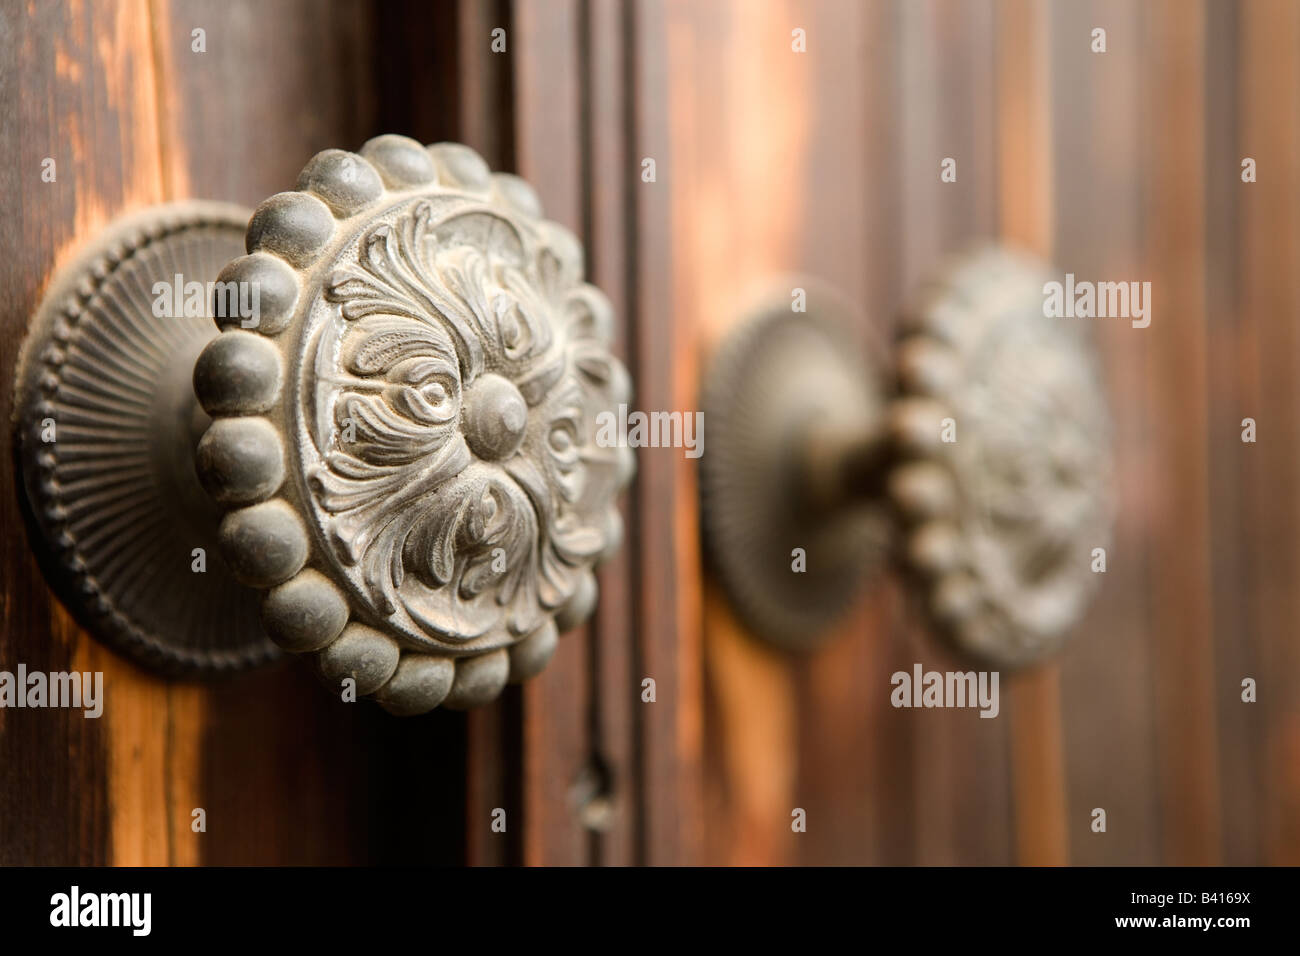 An old door knob in the Troodos Mountain village of Kakopetria. - Stock Image